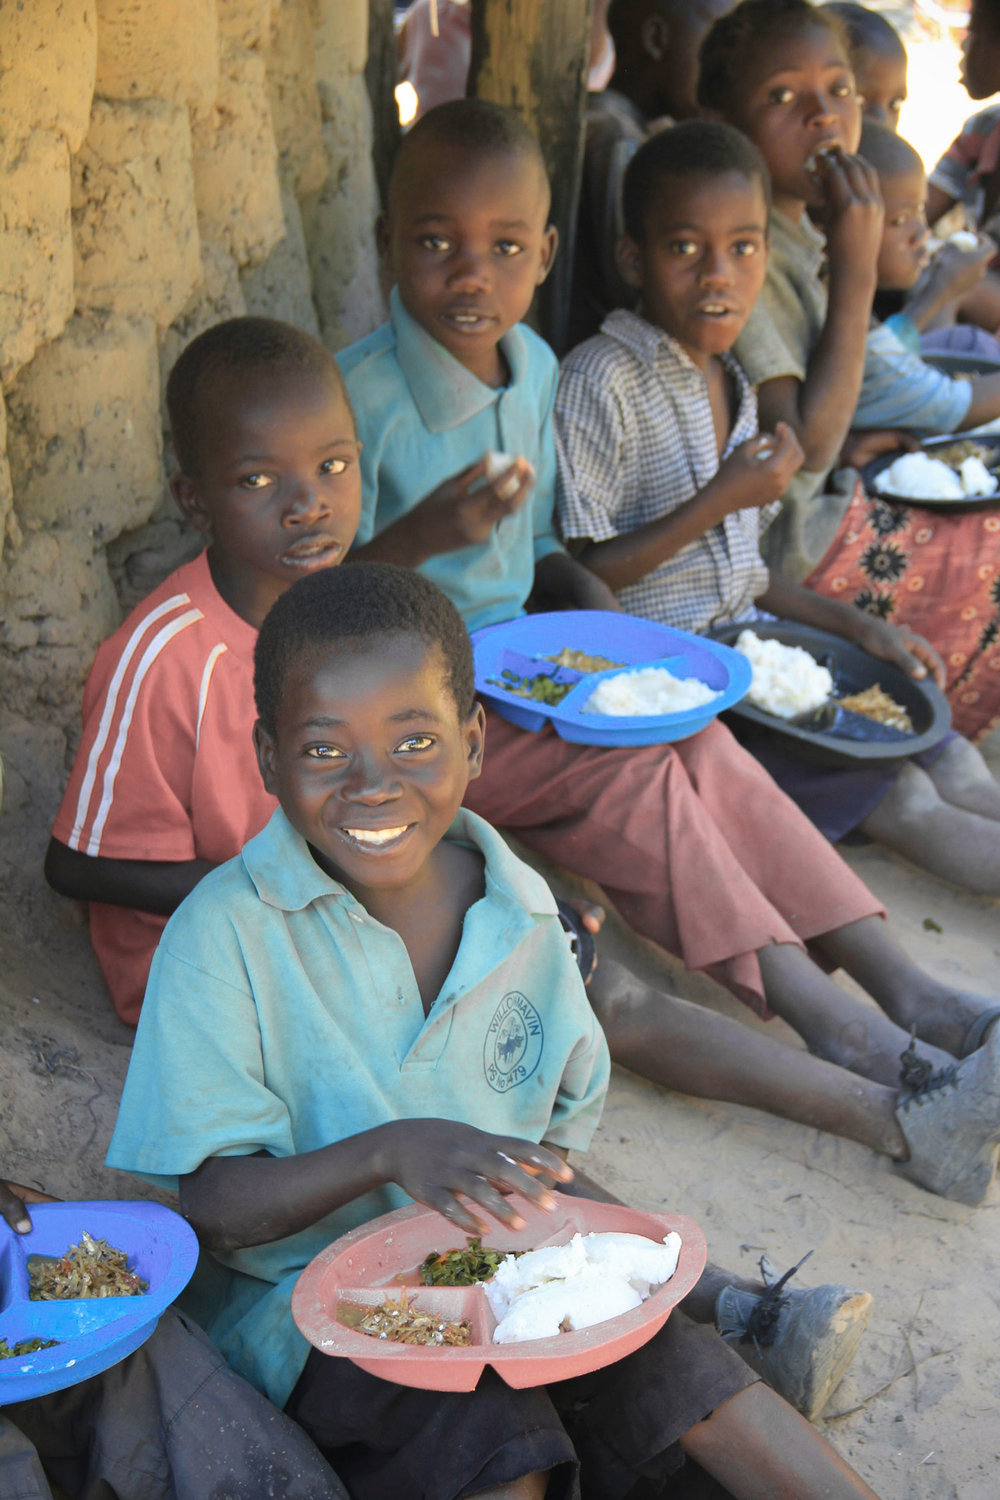 150 of the most vulnerable children in Chibuli receive a daily meal, access to education and access to basic health care.